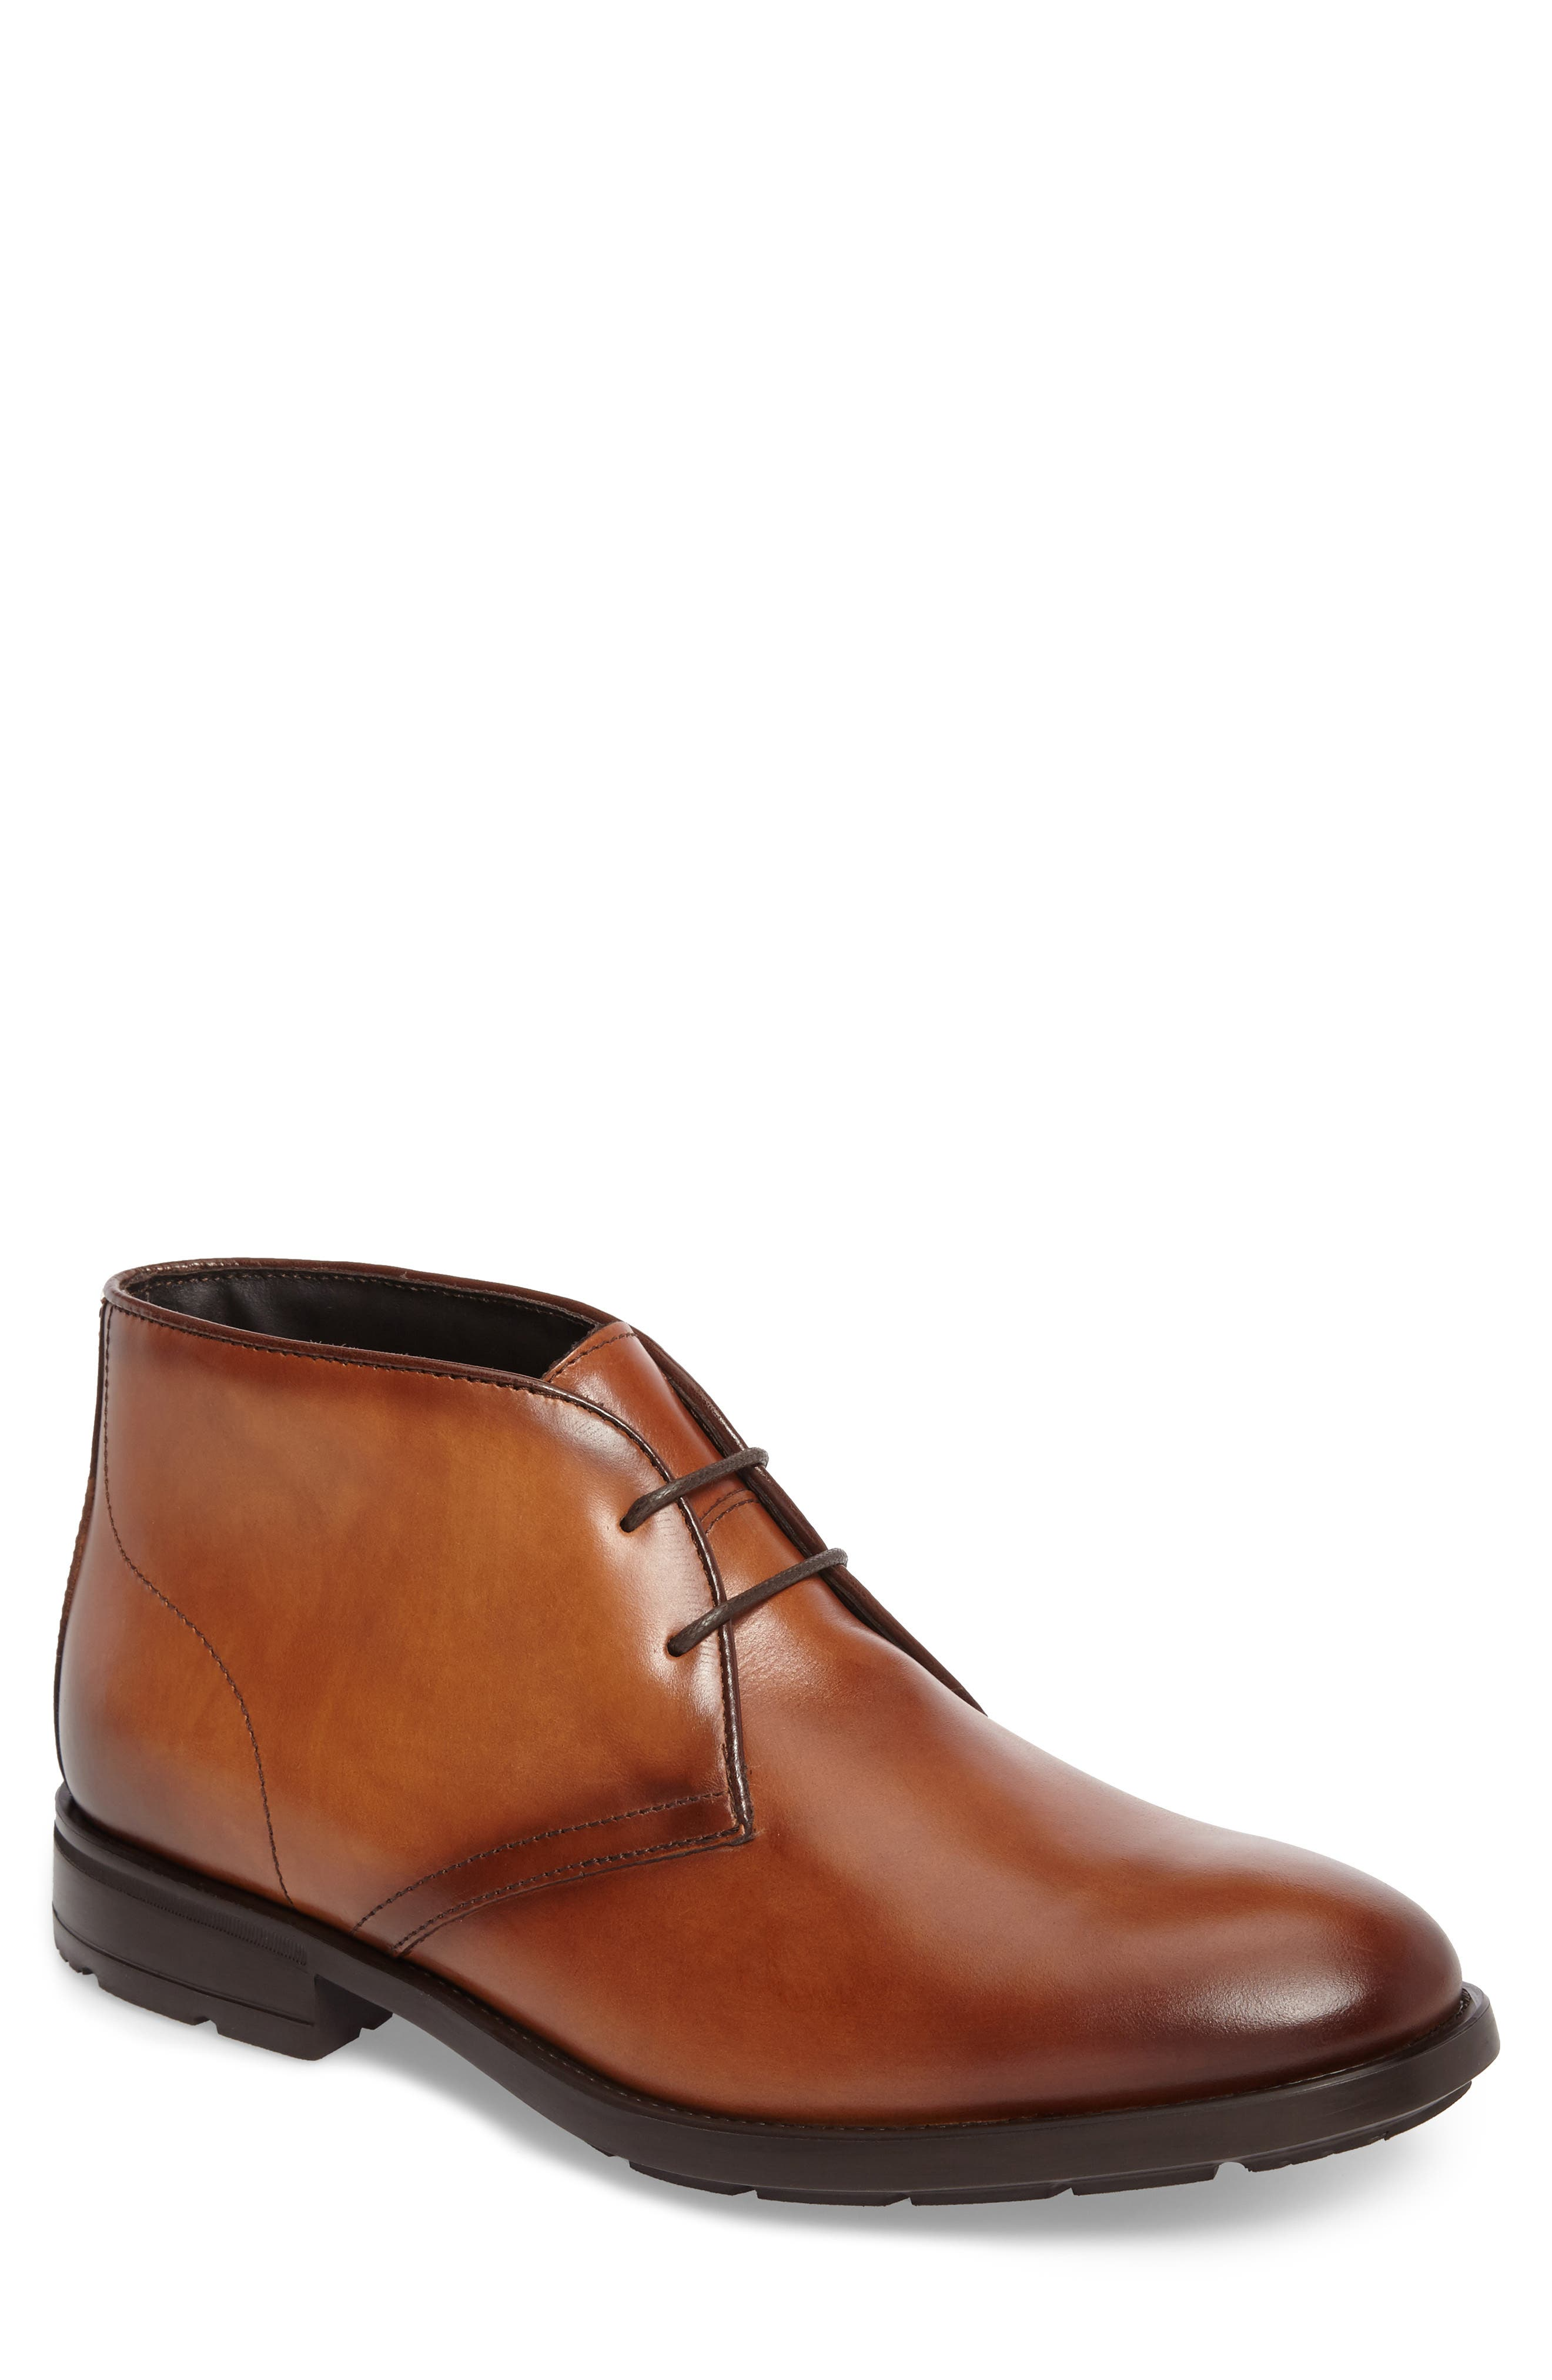 Alternate Image 1 Selected - To Boot New York Conte Chukka Boot (Men)